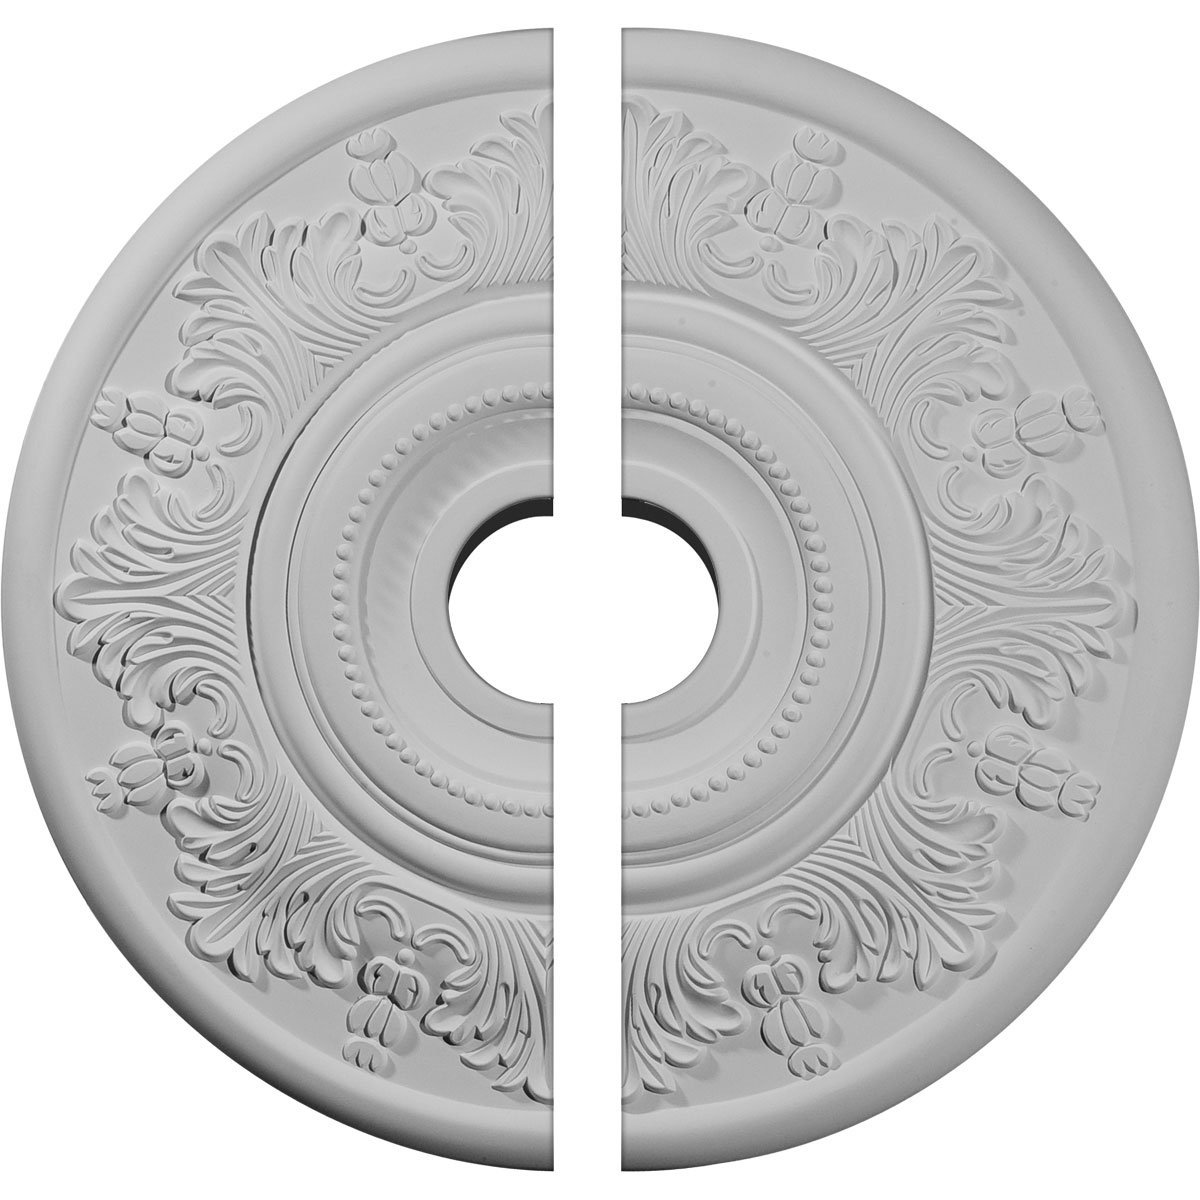 Ekena Millwork CM20VI2 20'' OD x 3 ID x 1 P Vienna Ceiling Medallion, Two Piece (Fits Canopies up to 6 1/2''), Factory Primed and Ready to Paint